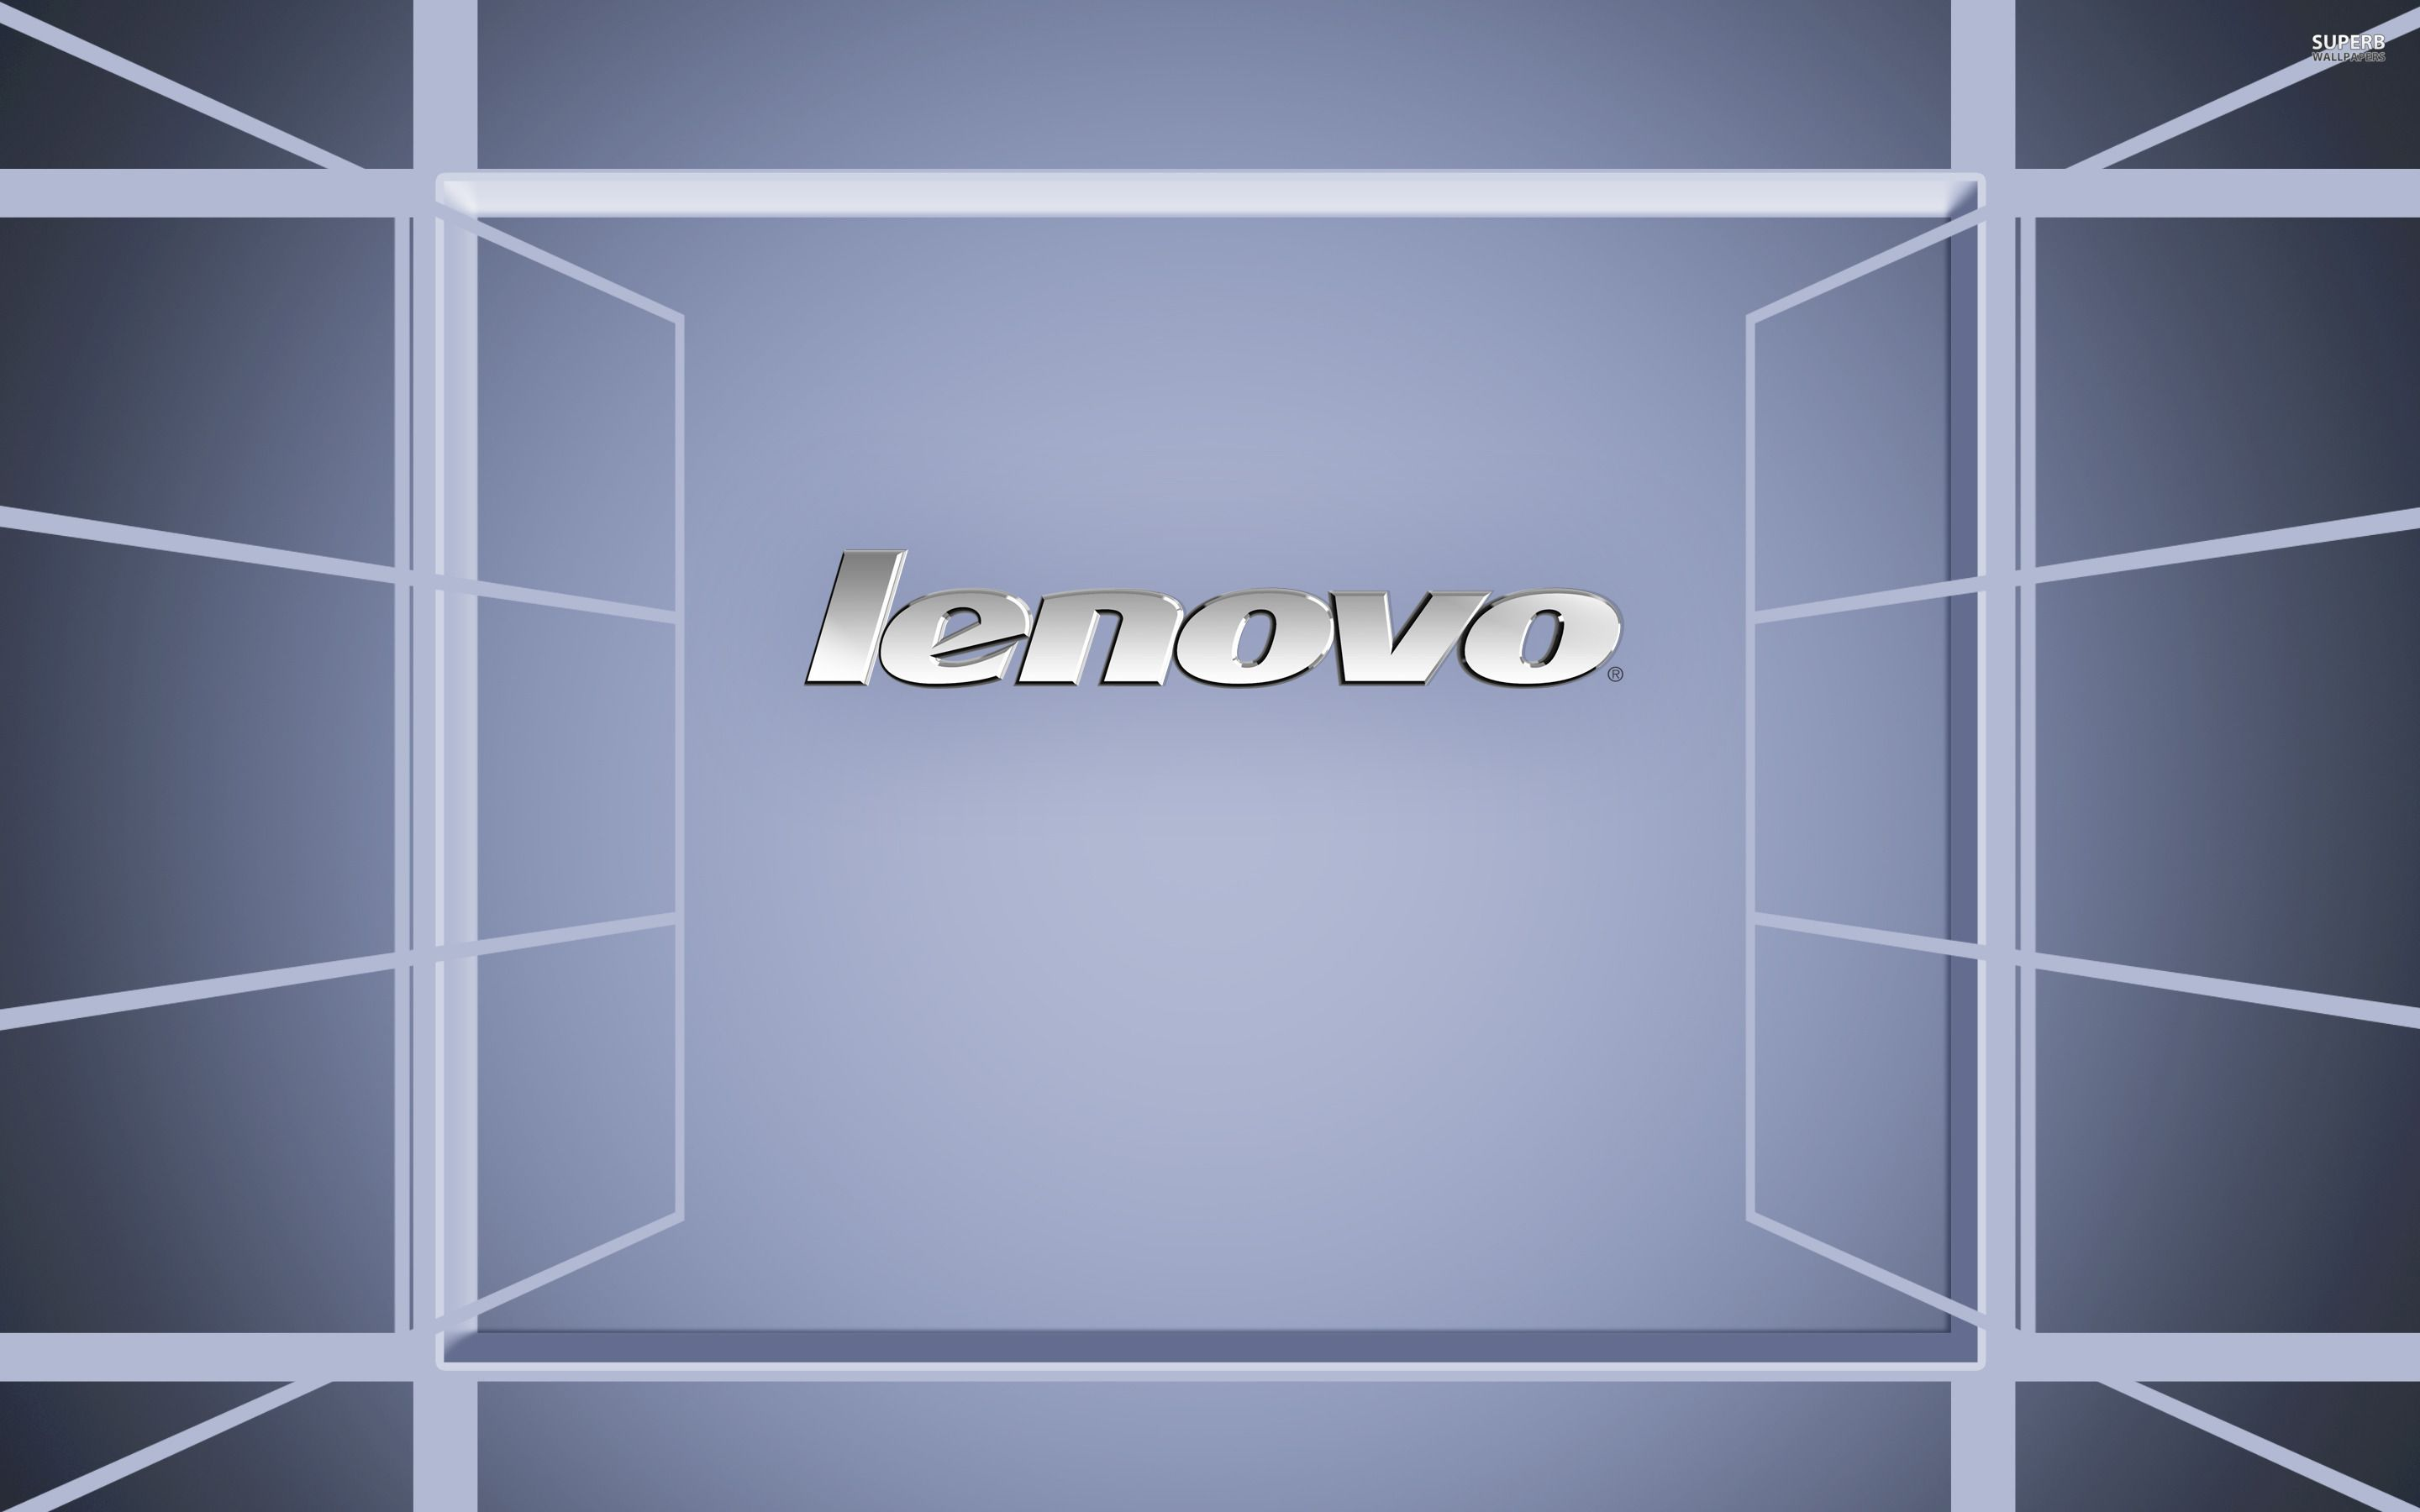 lenovo hd wallpapers for laptop free desktop wallpaper downloads